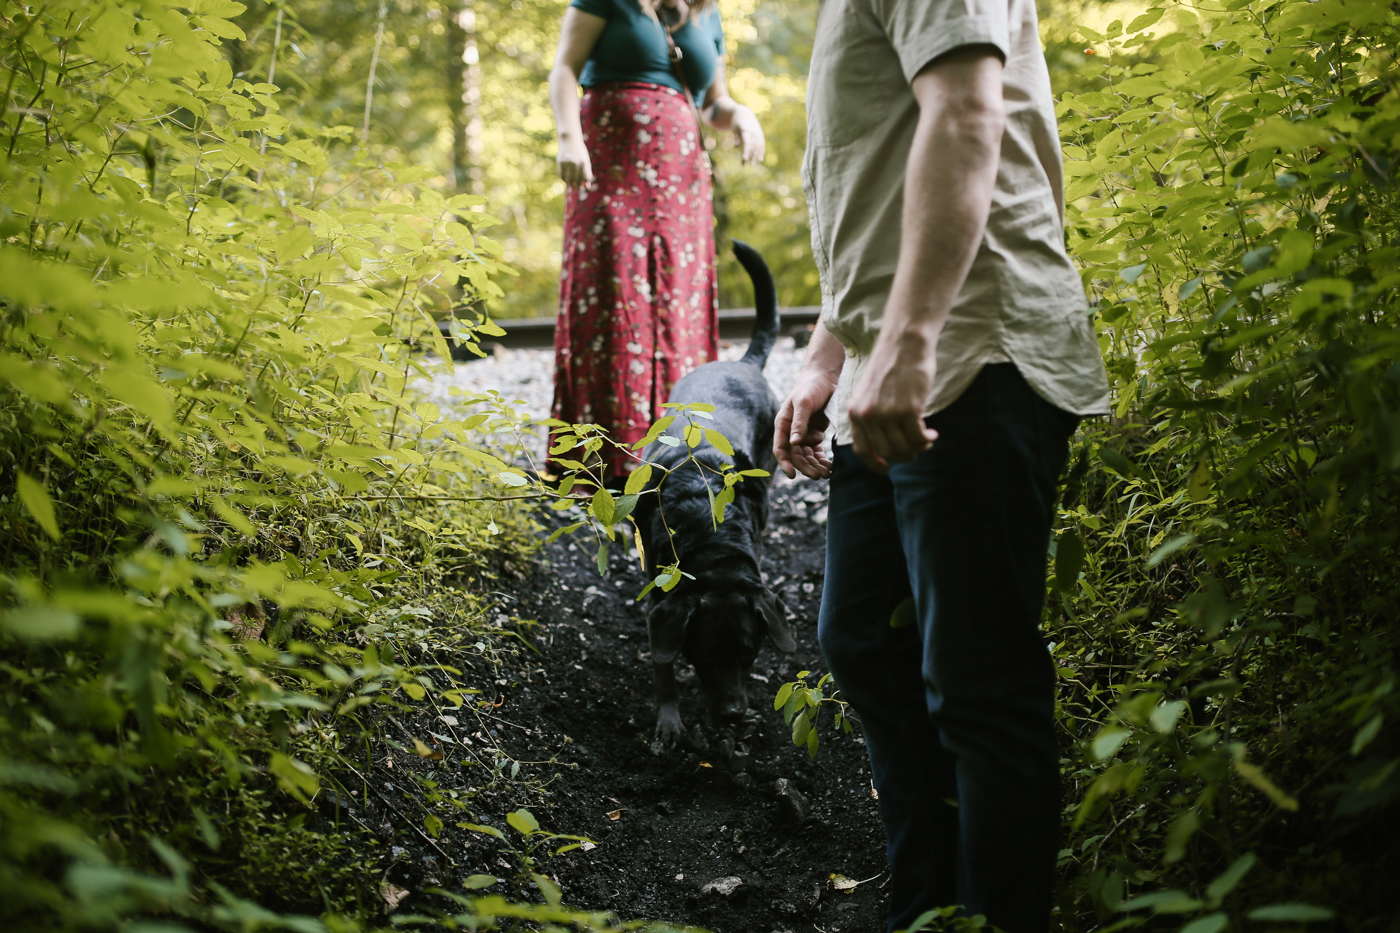 Eastern-Kentucky-Outdoors-Cave-Engagement-Photography-2.jpg